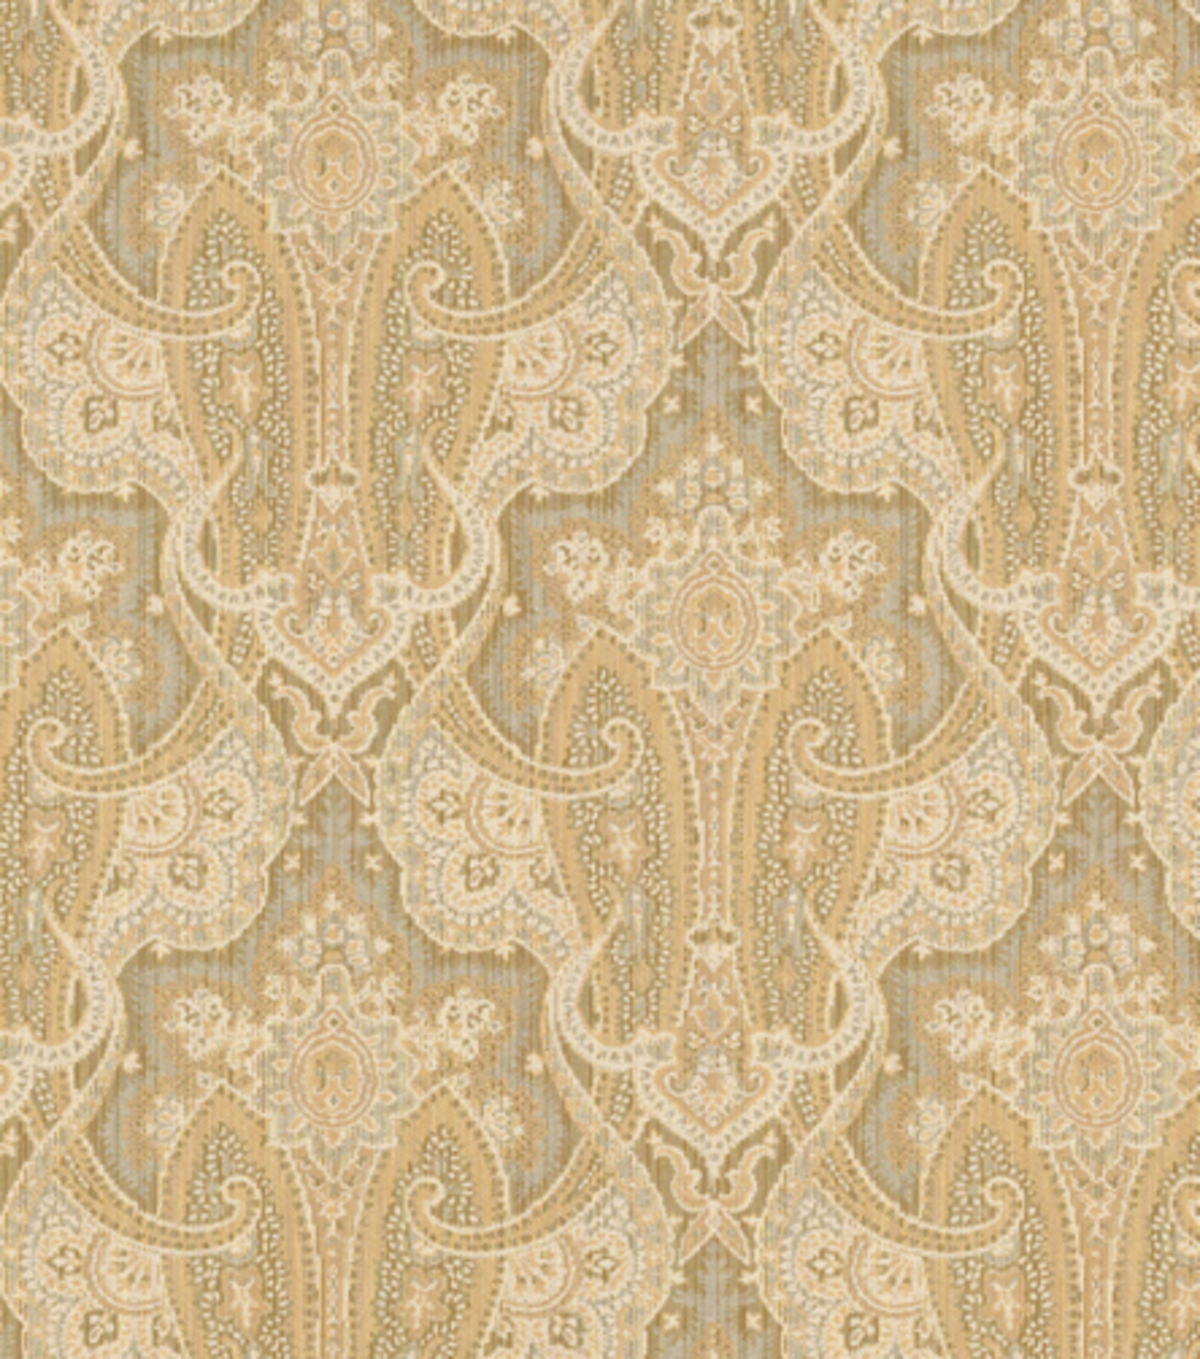 Home Decor Upholstery Fabric-Crypton Lauden Way-Biscuit